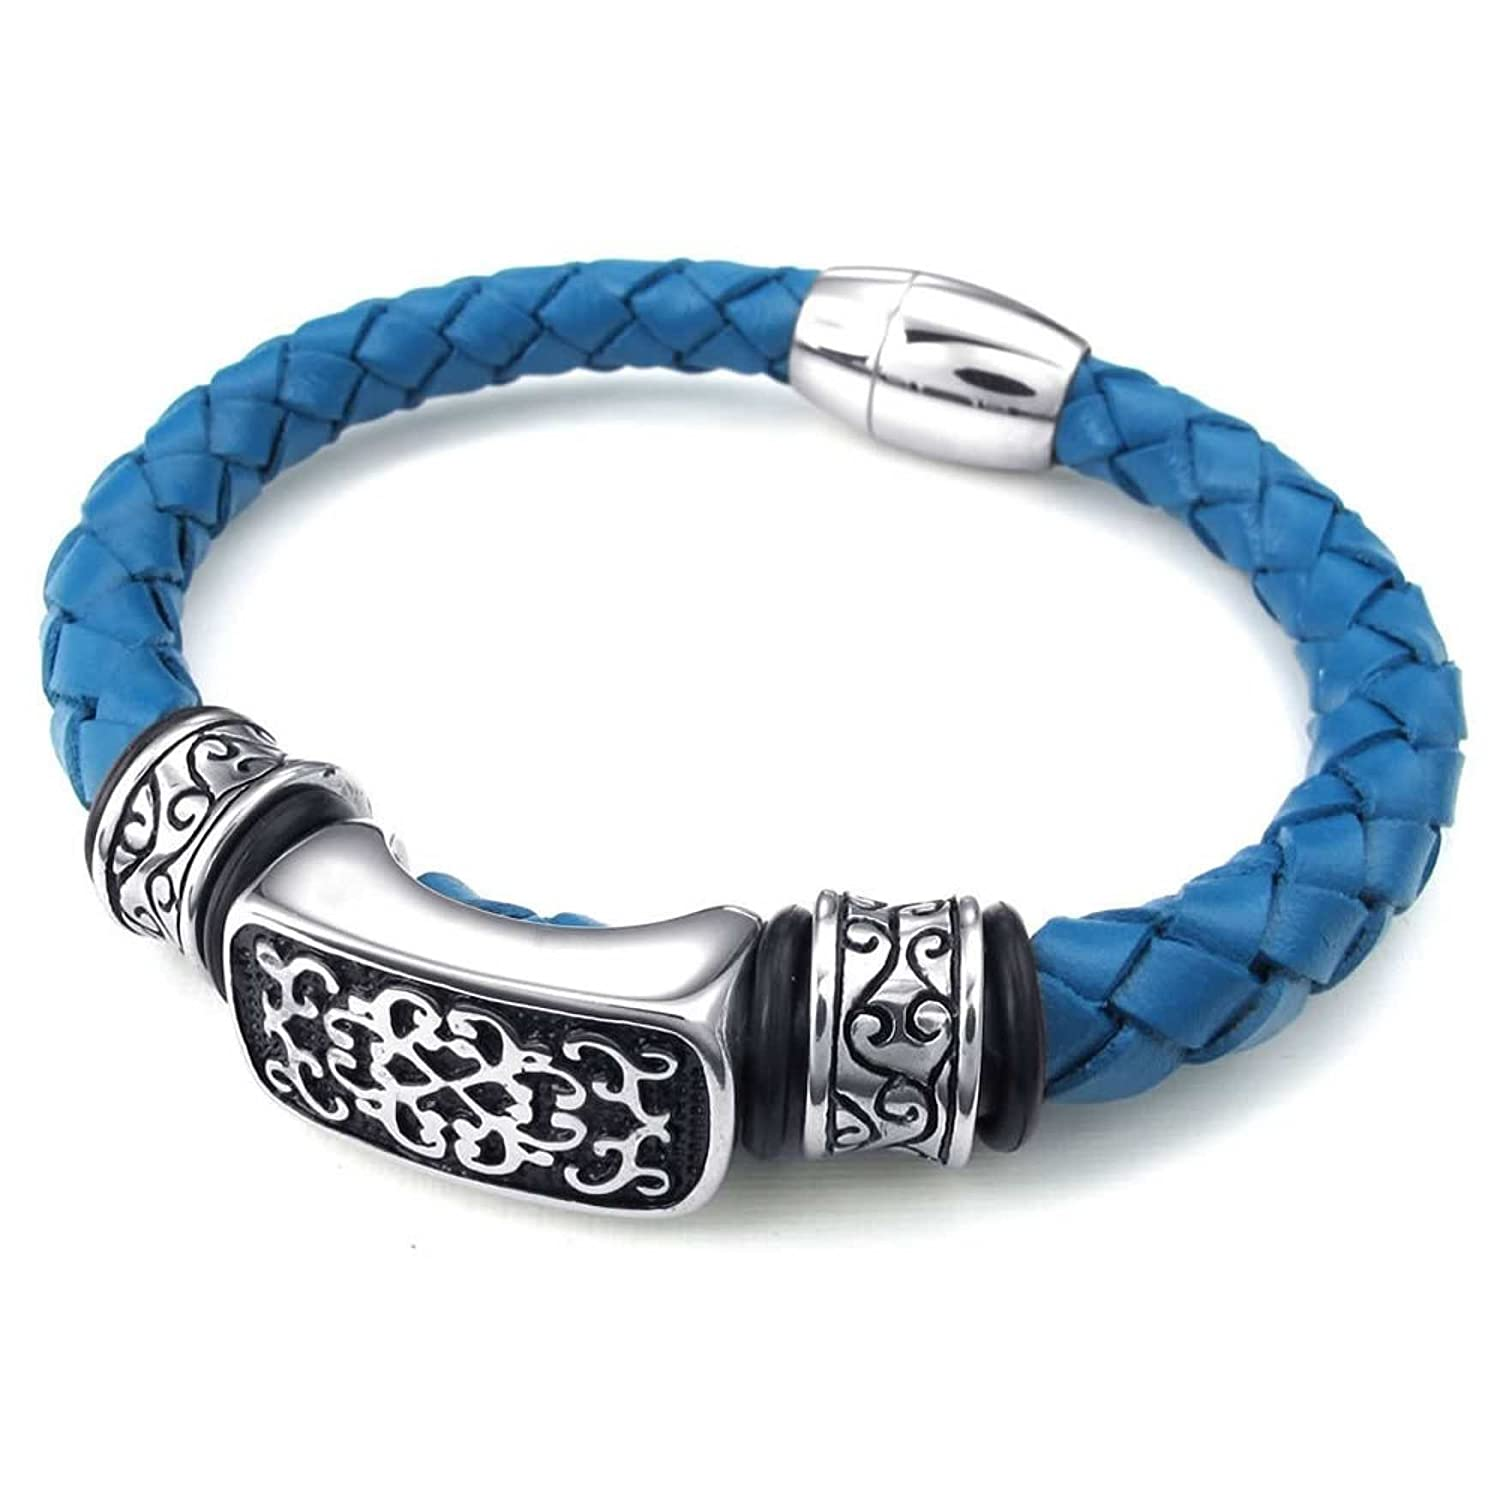 8.5 ANAZOZ Blue Silver Mens Stainless Steel Leather Cuff Bangle Bracelet Weave Magnetic Clasp 9 8